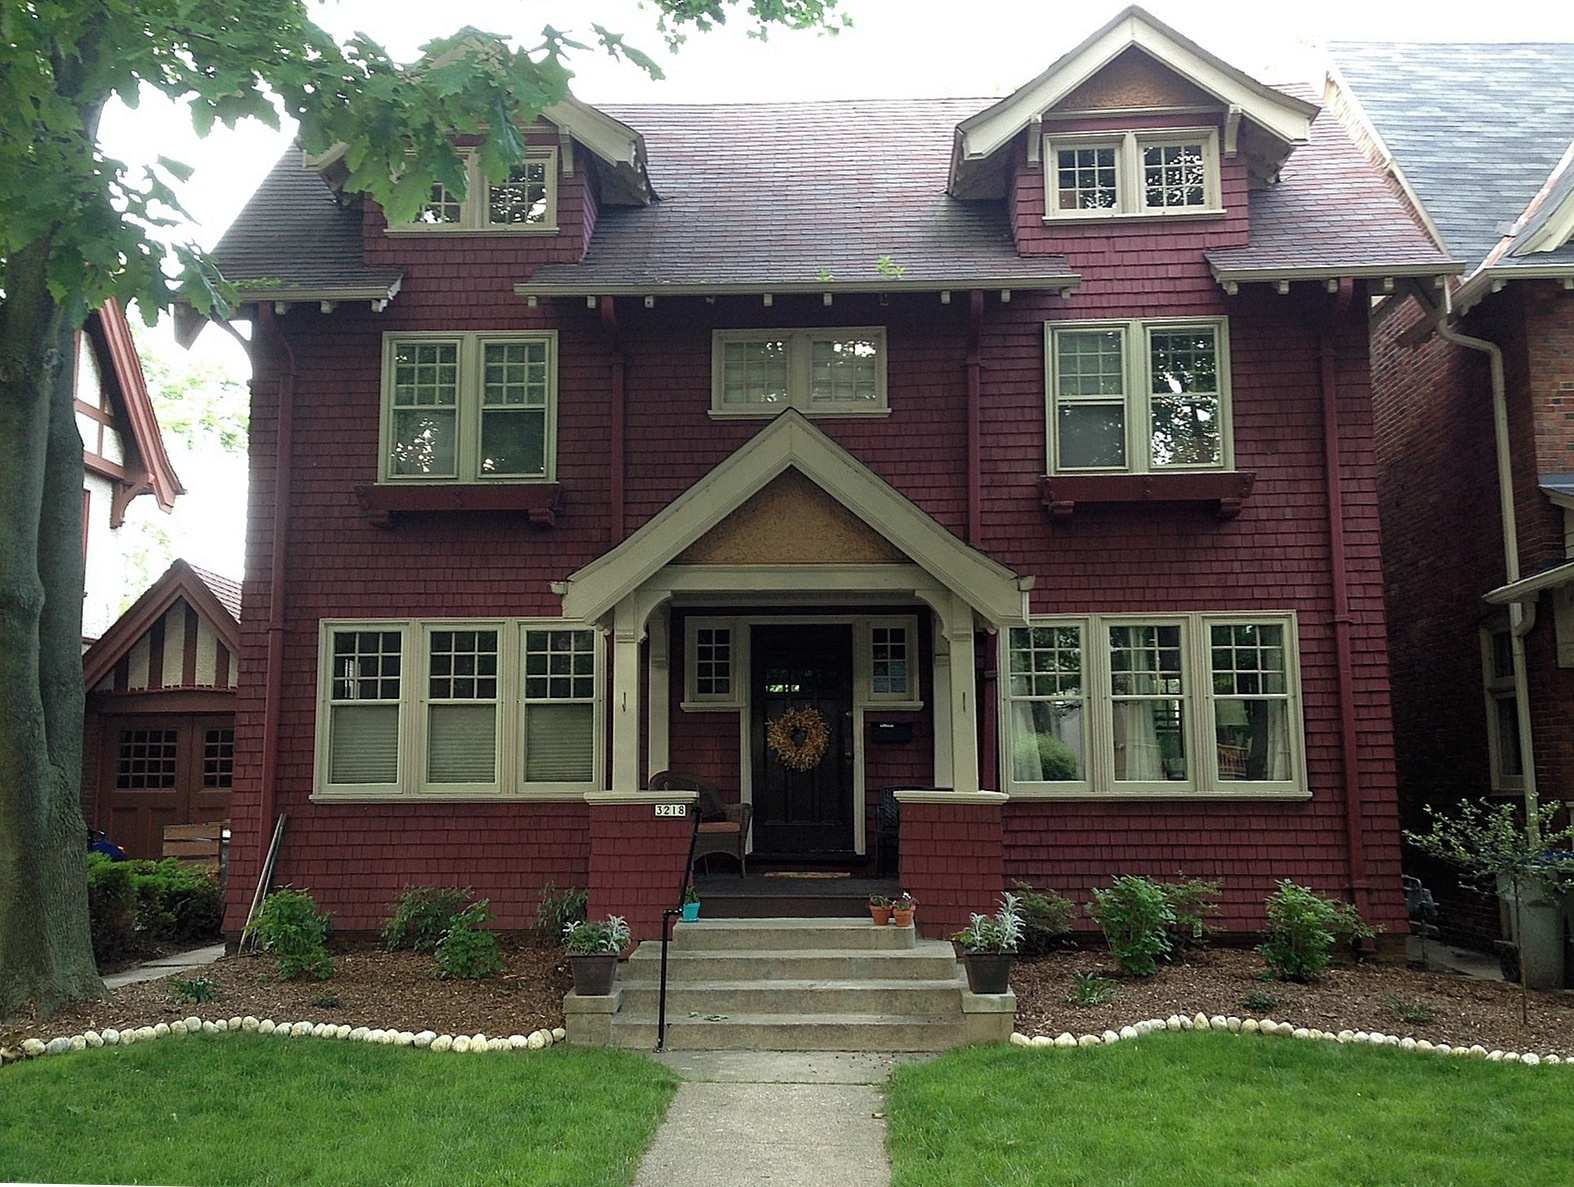 Homes On The Market For 300 000 The Jorgenson Group